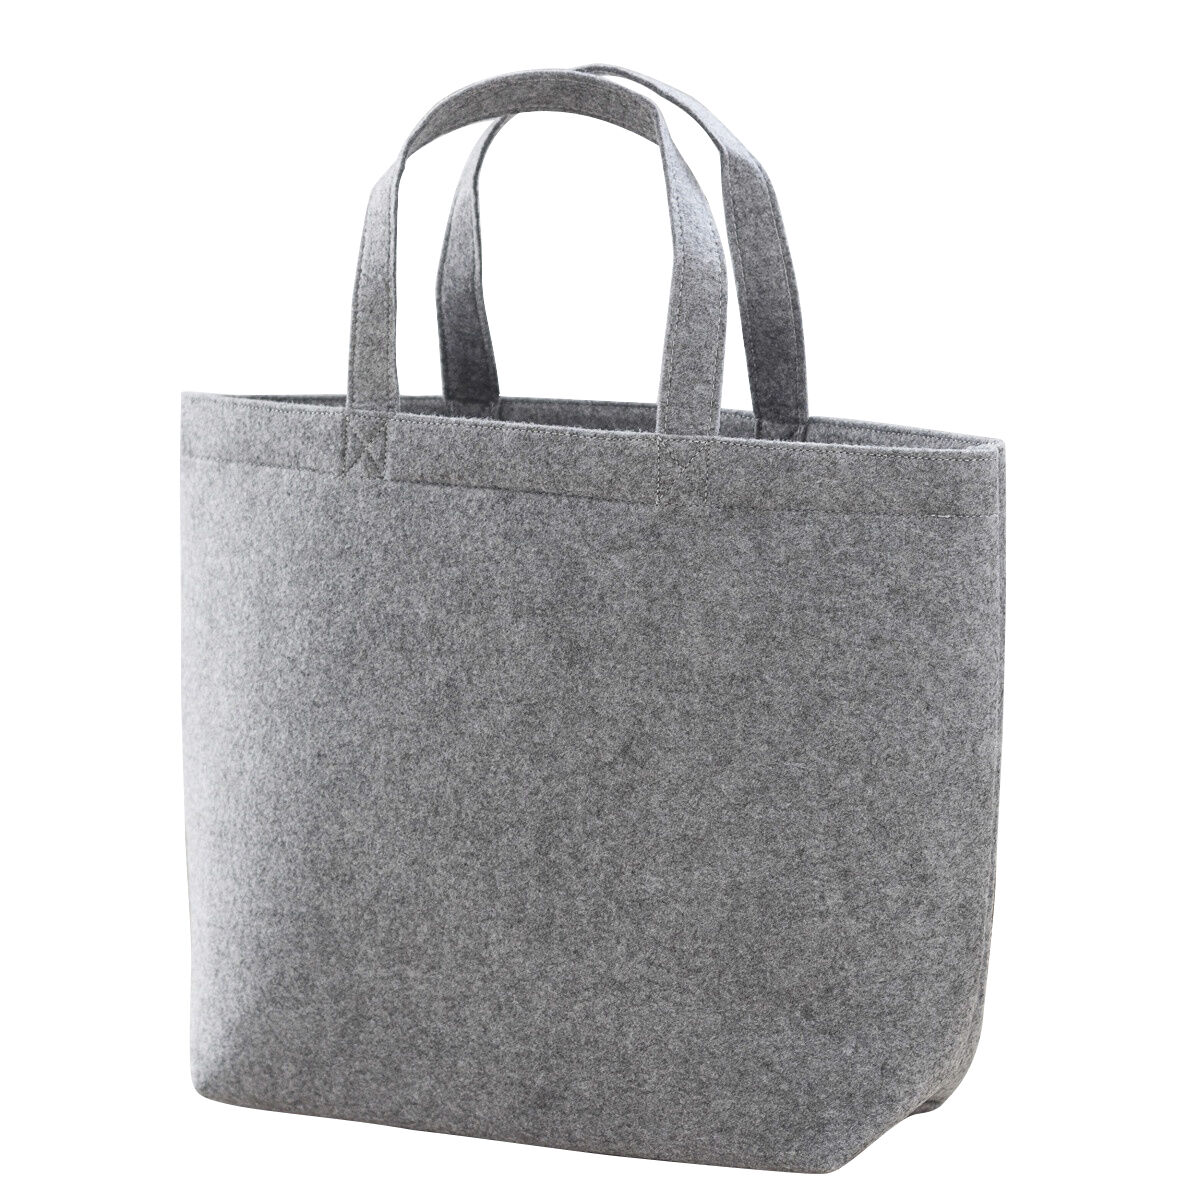 Bags - Sac De Courses Ample Jassz (Lot De 2) (Gris clair) - UTBC4164